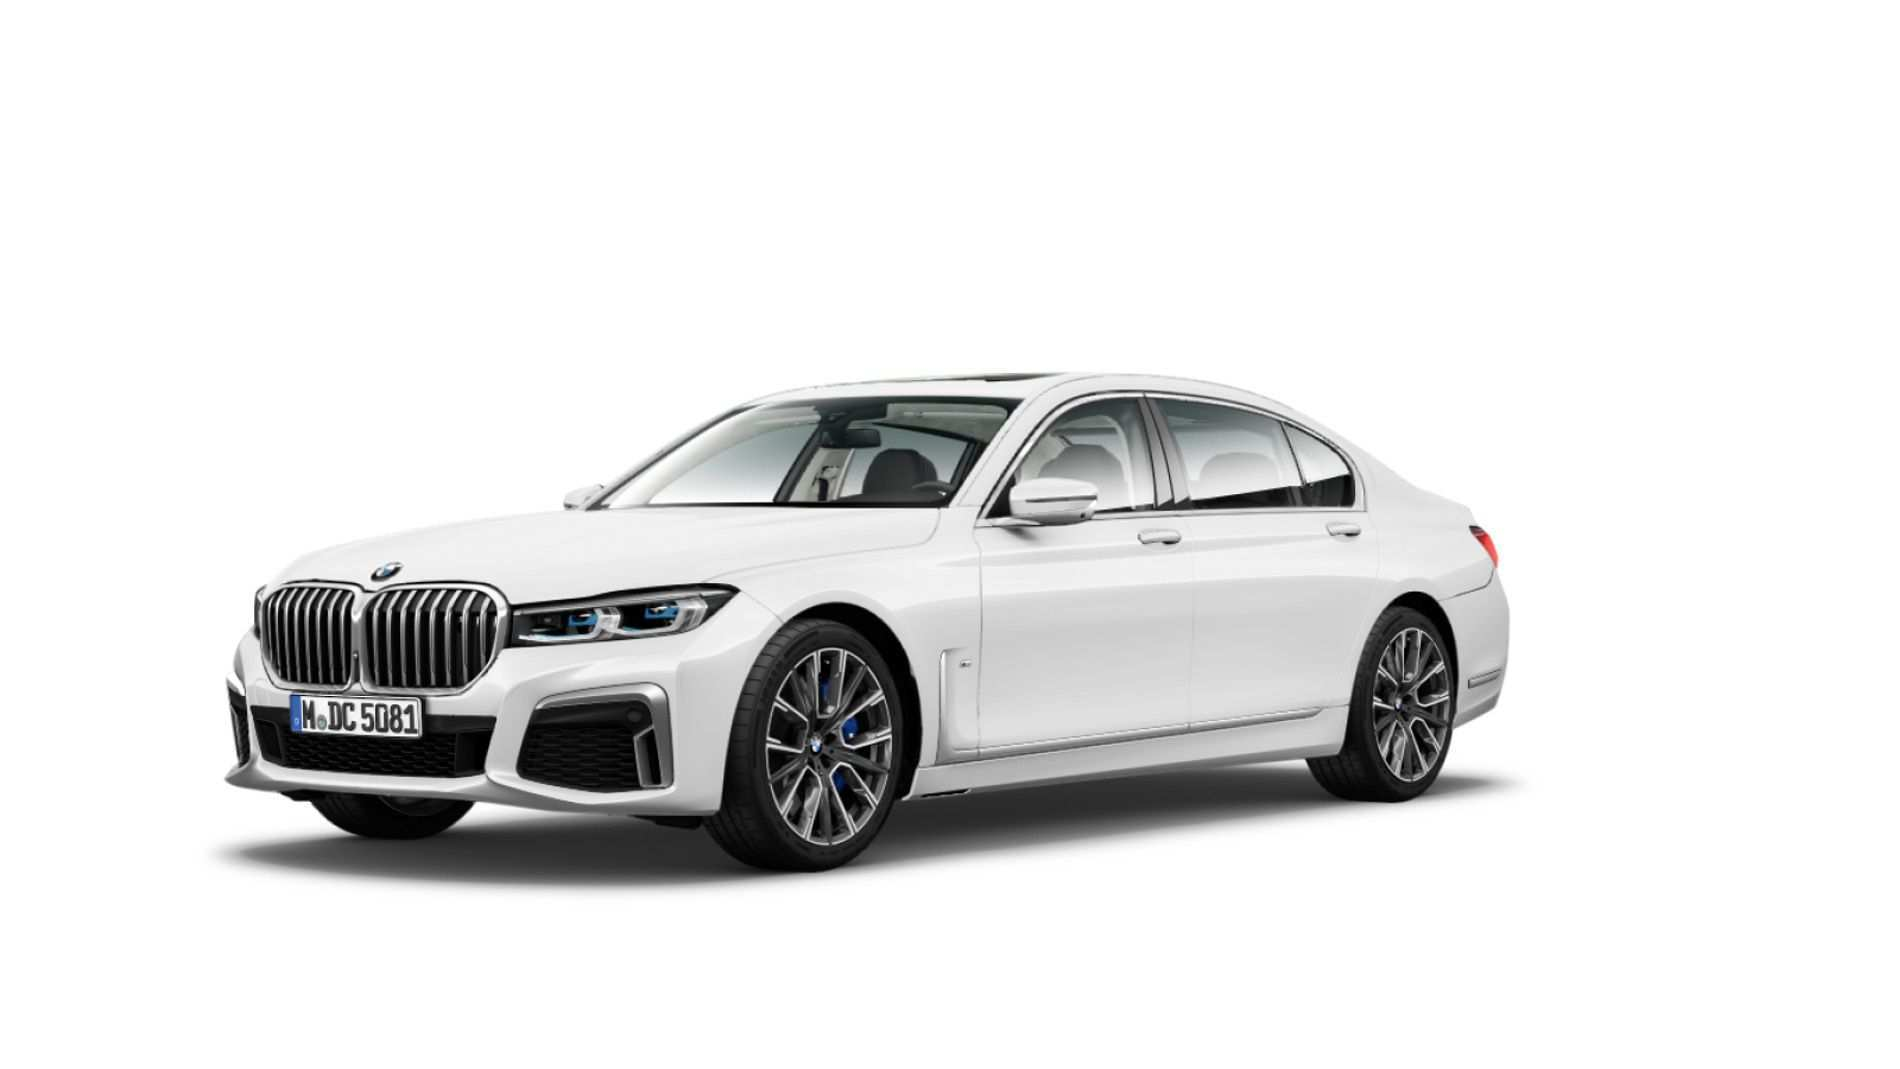 47 The Best BMW 5 Series Lci 2020 Price and Review